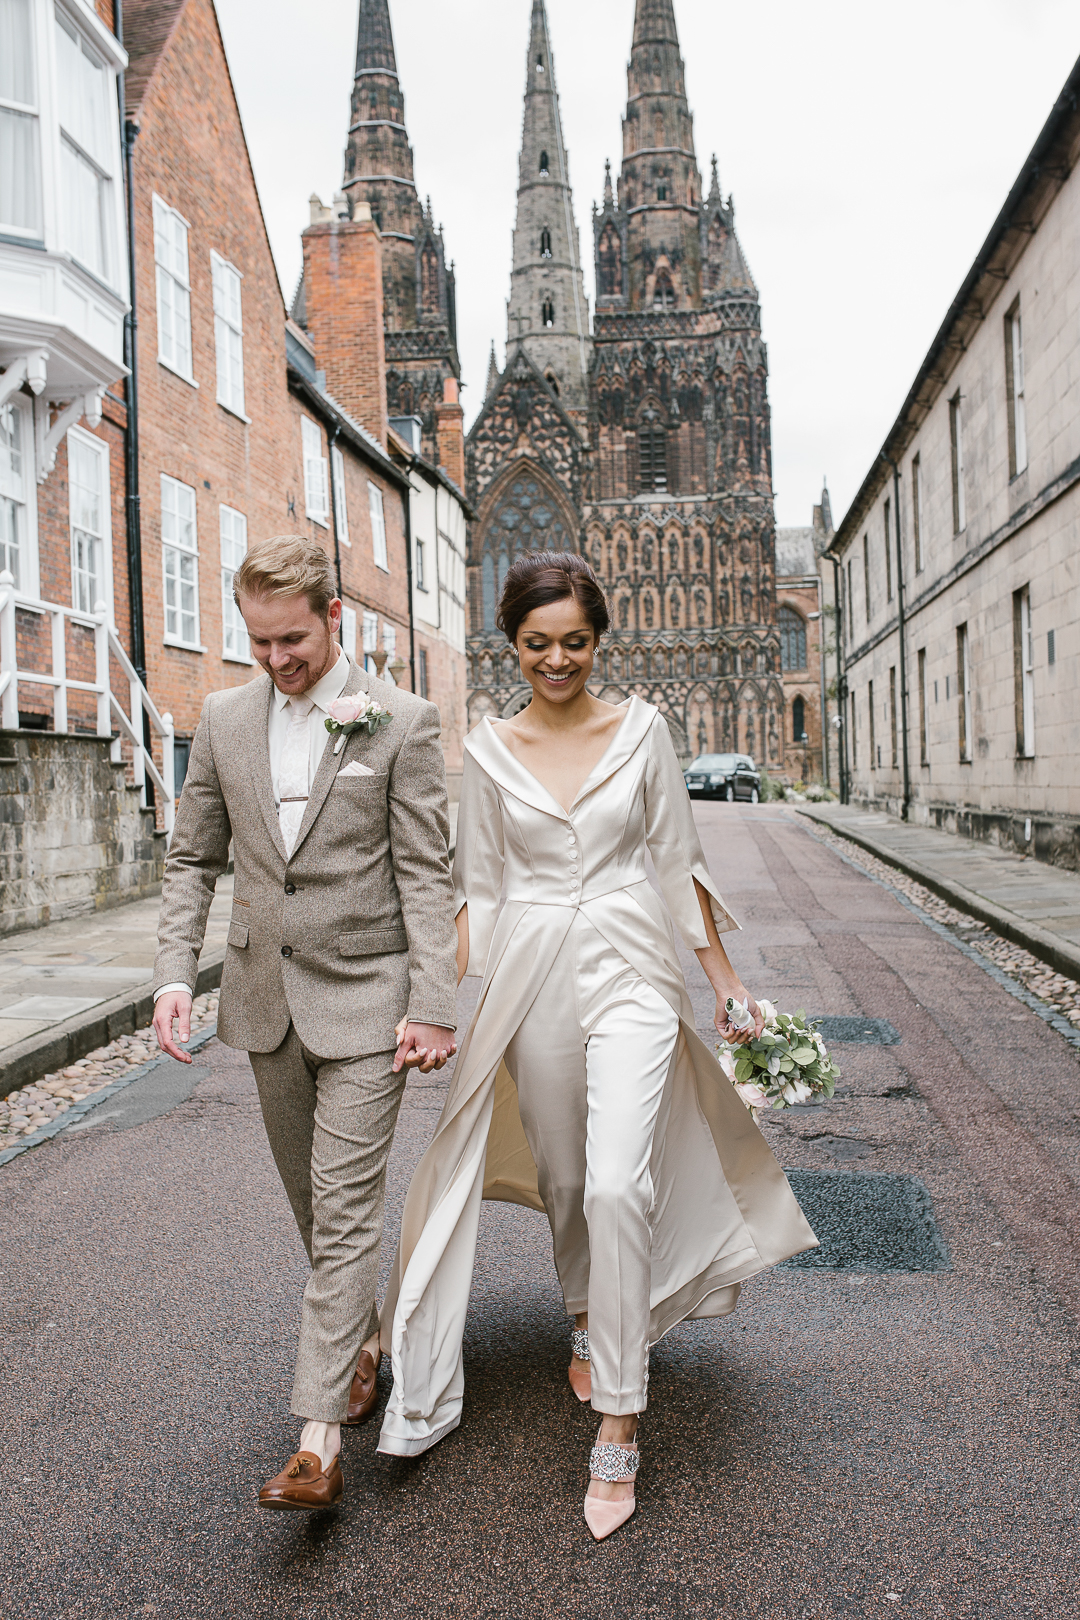 happy fun photo of bride and groom laughing infront of lichfield cathedral- natural wedding photographer in staffordshire